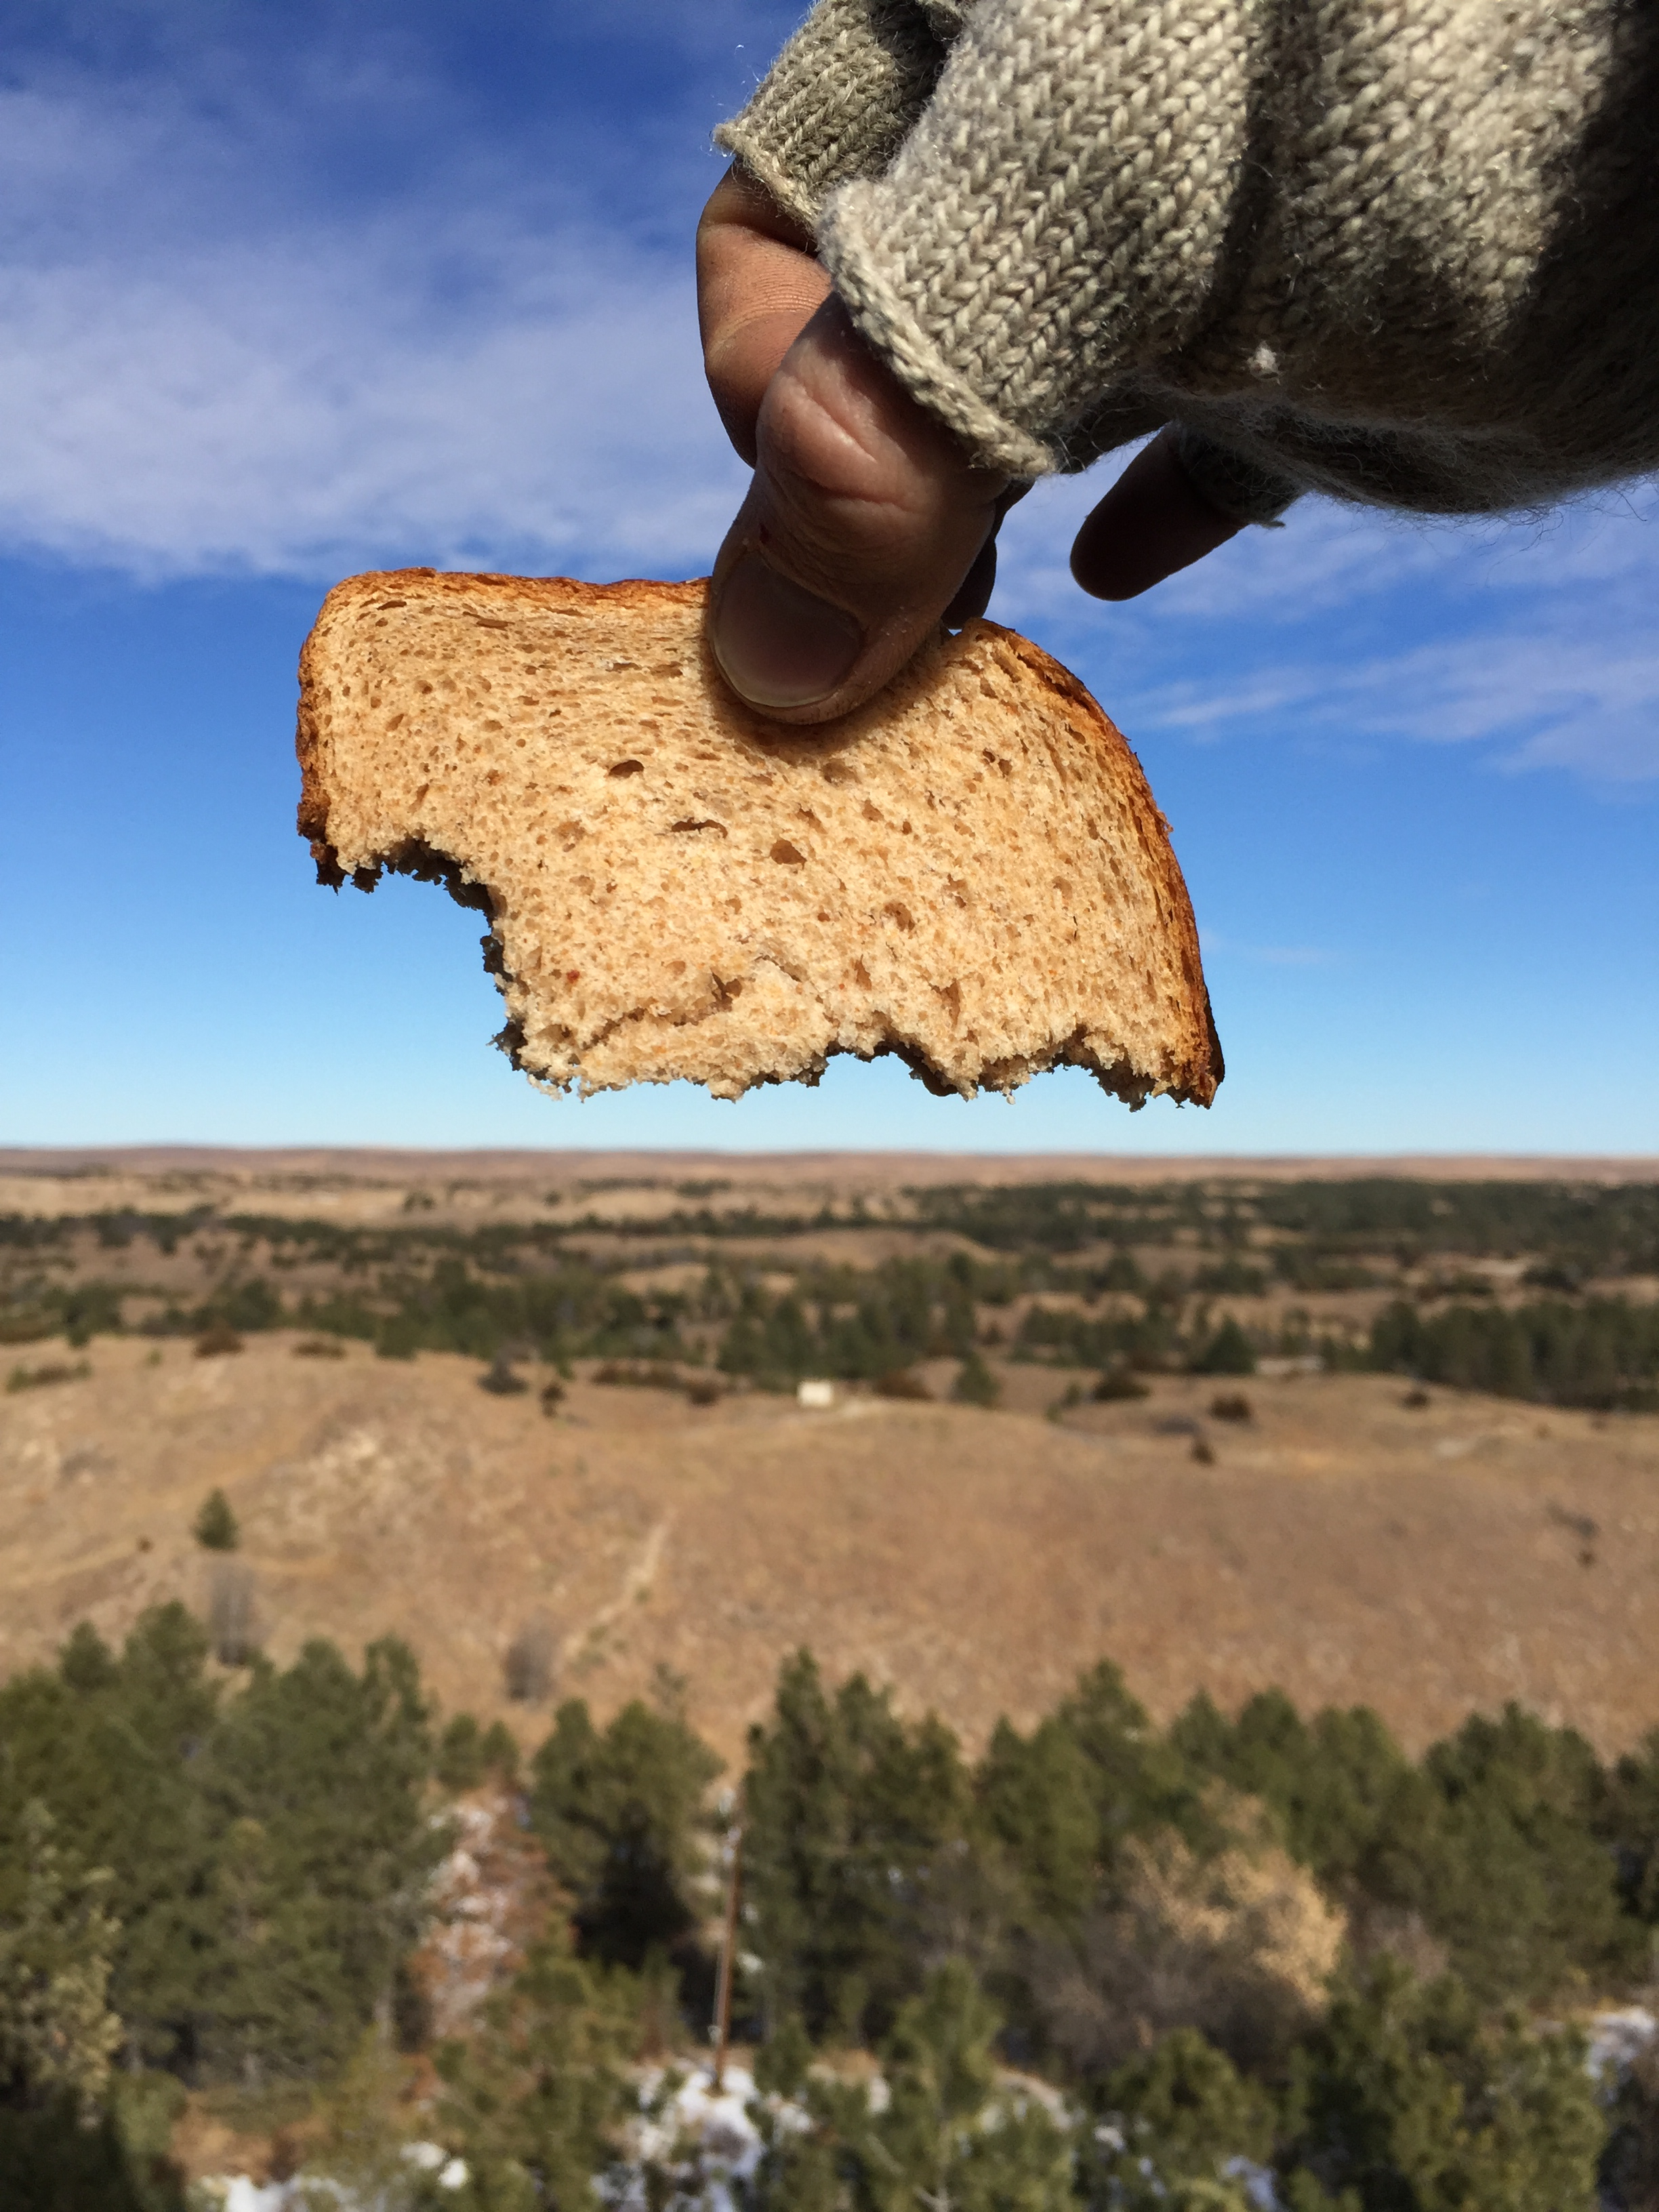 Someone is holding a piece of bread shaped like Nebraska from the Scott Lookout Tower